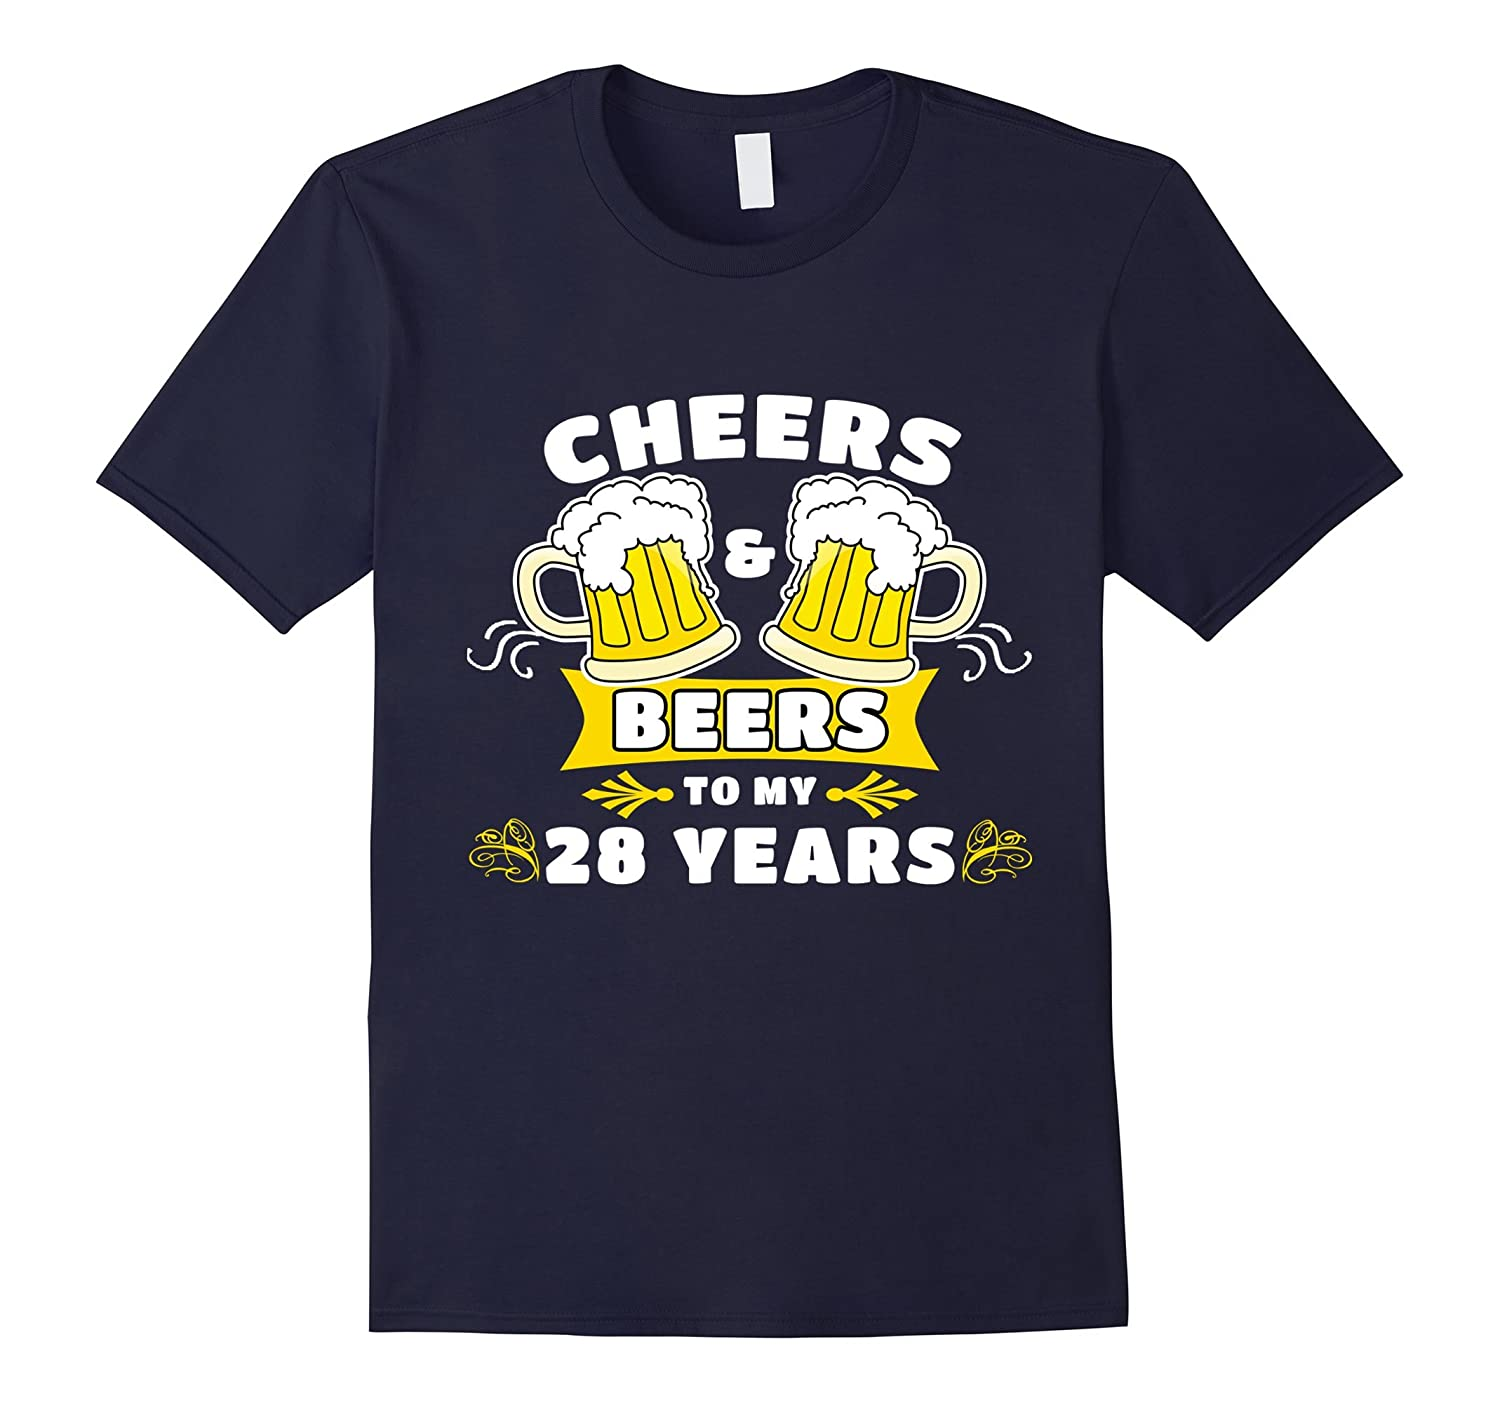 Cheers And Beers To My 28 Years T-Shirt 28th Birthday Gift-Art